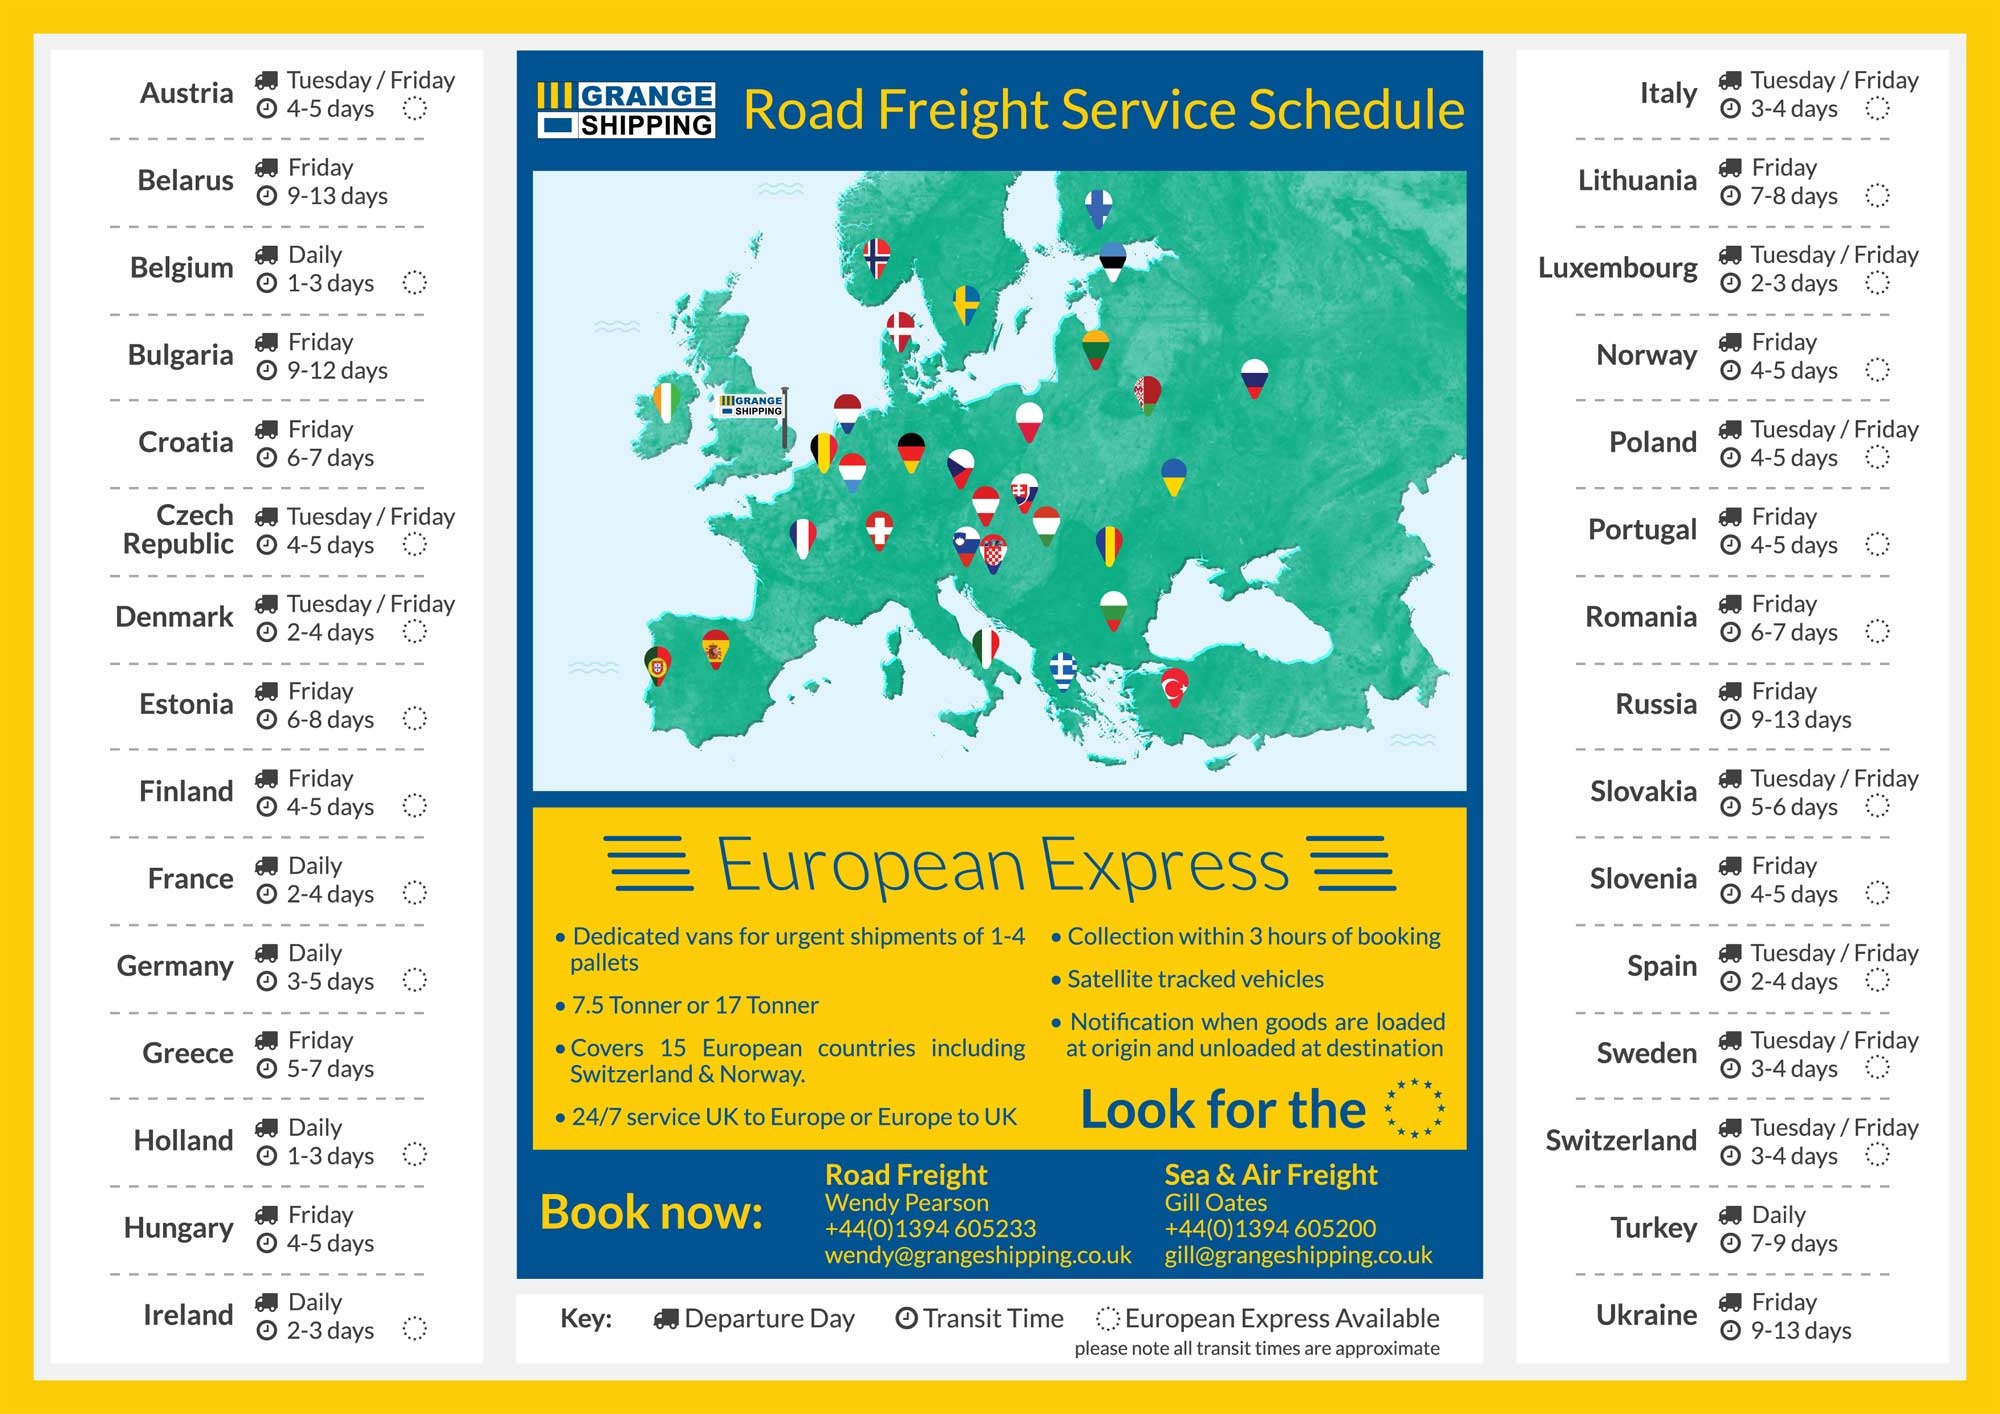 Road Freight Service Schedule